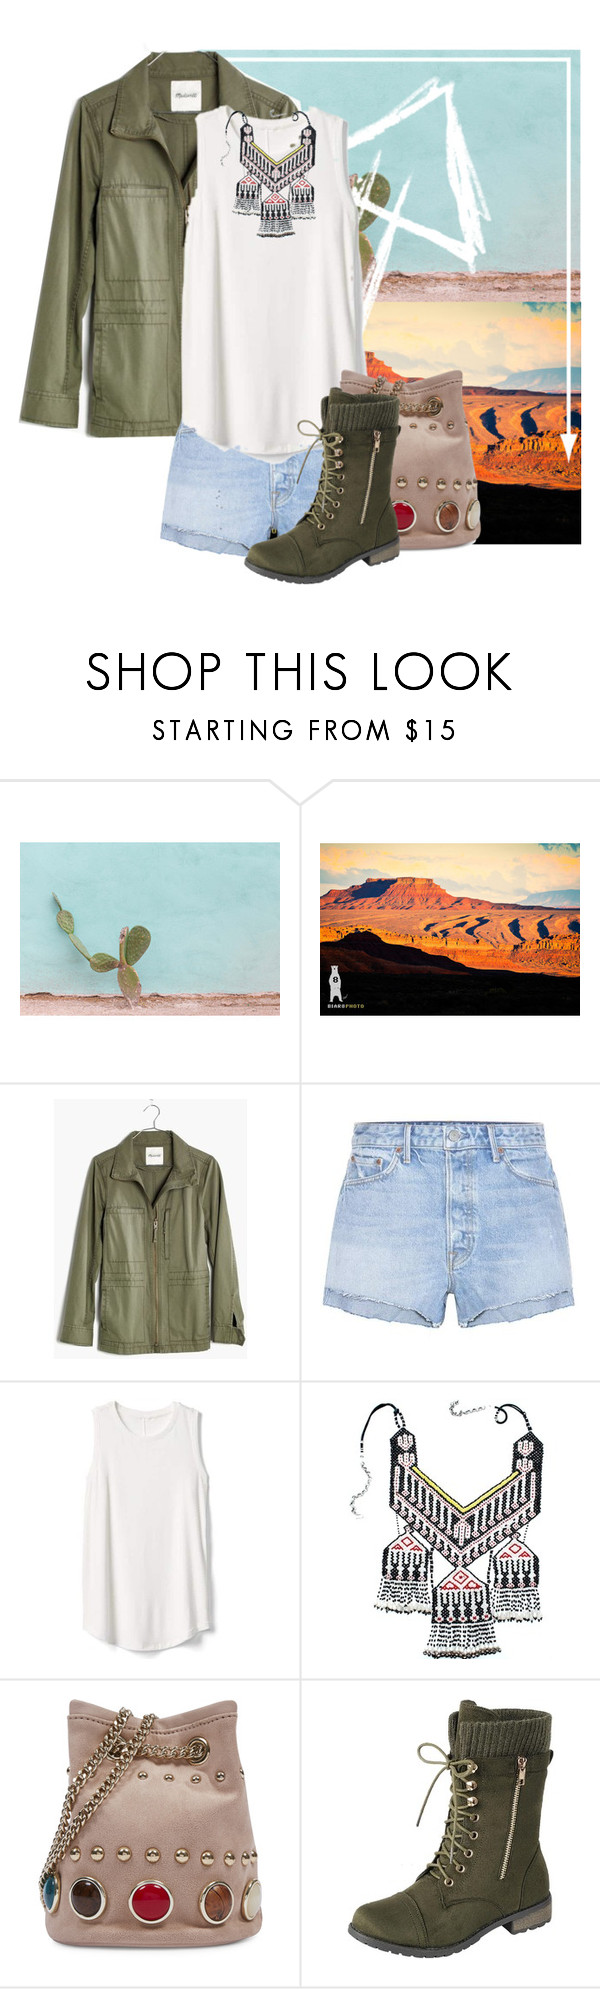 """Desert Bound"" by ebeb1233 ❤ liked on Polyvore featuring Madewell, GRLFRND, Gap, Vintage and Nine West"